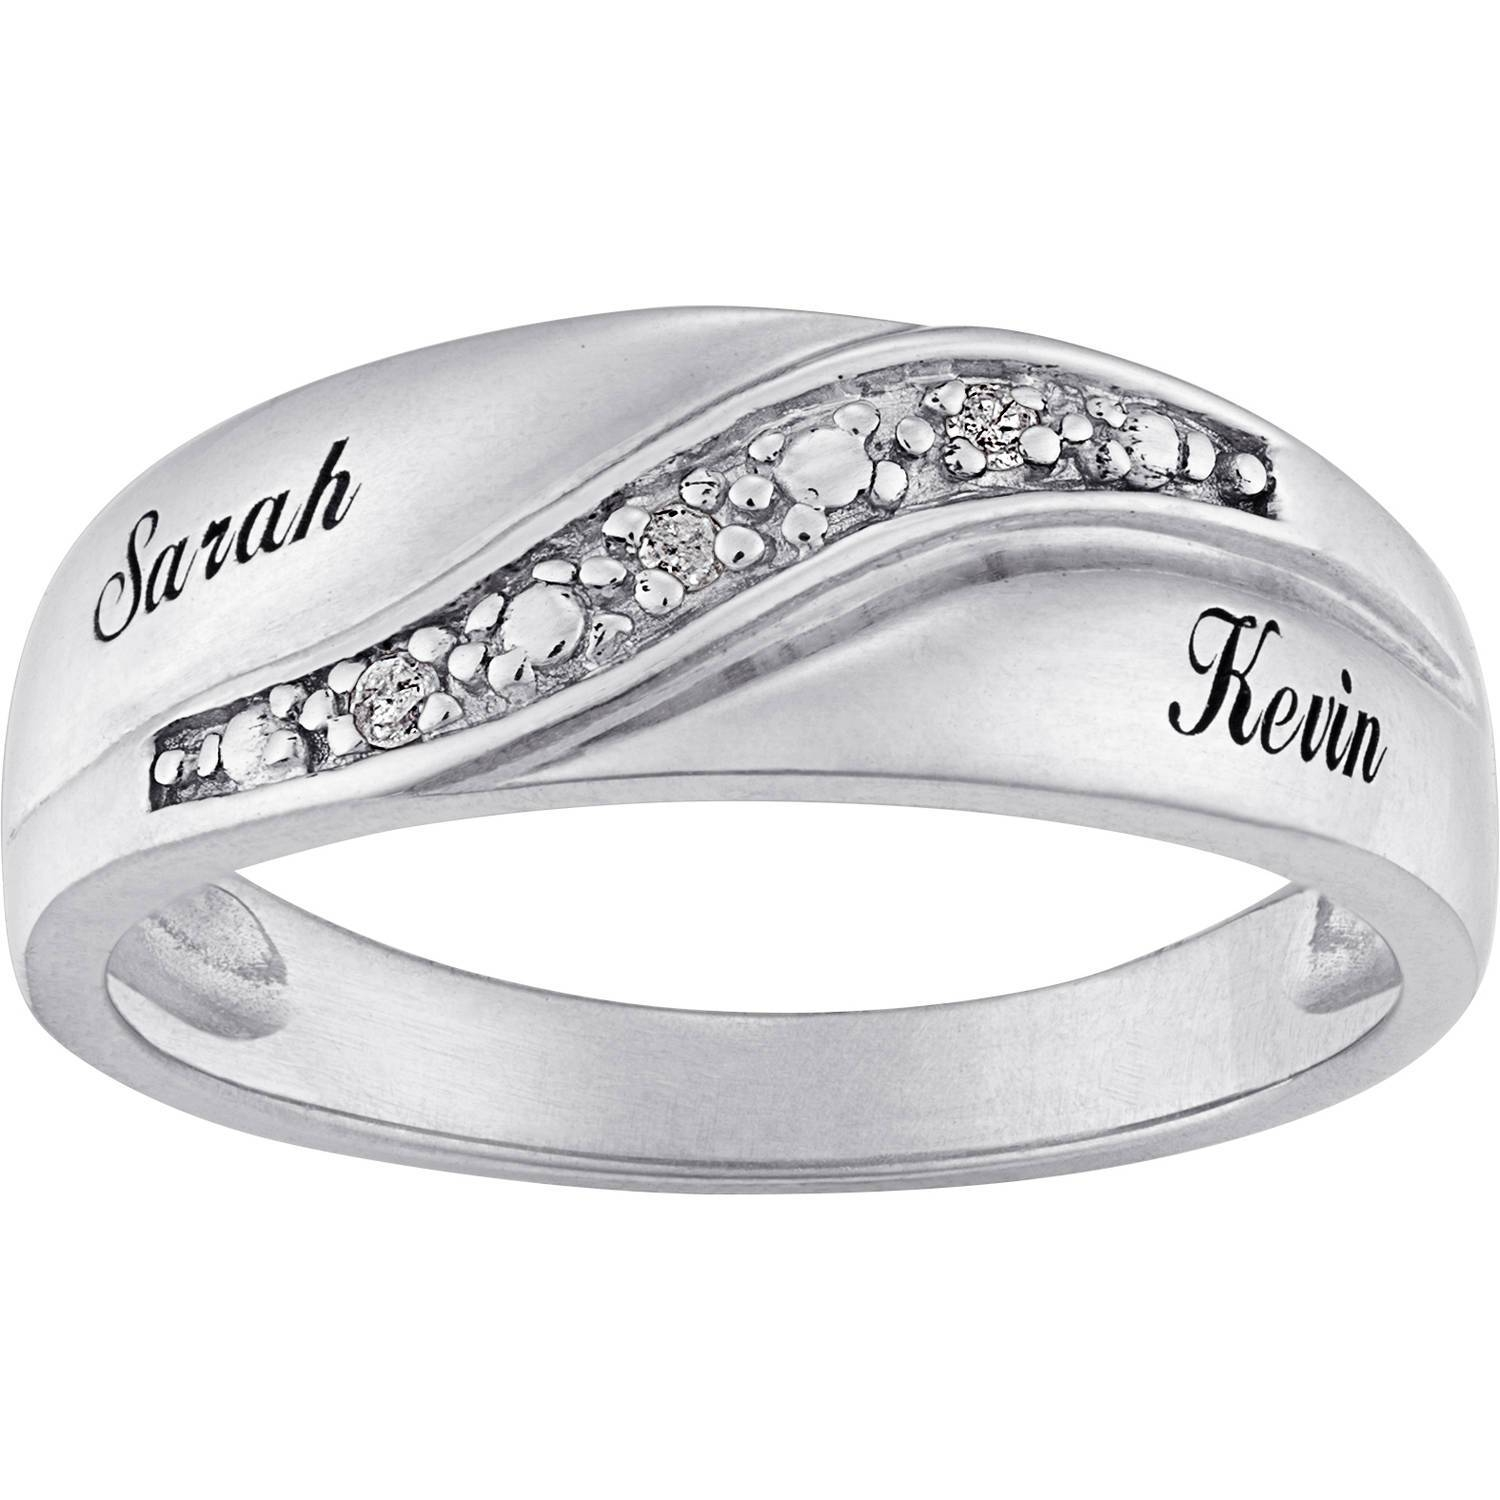 Wedding Rings : Wedding Band Engraving Quotes For Him Creative Throughout Custom Wedding Bands For Him (View 15 of 15)